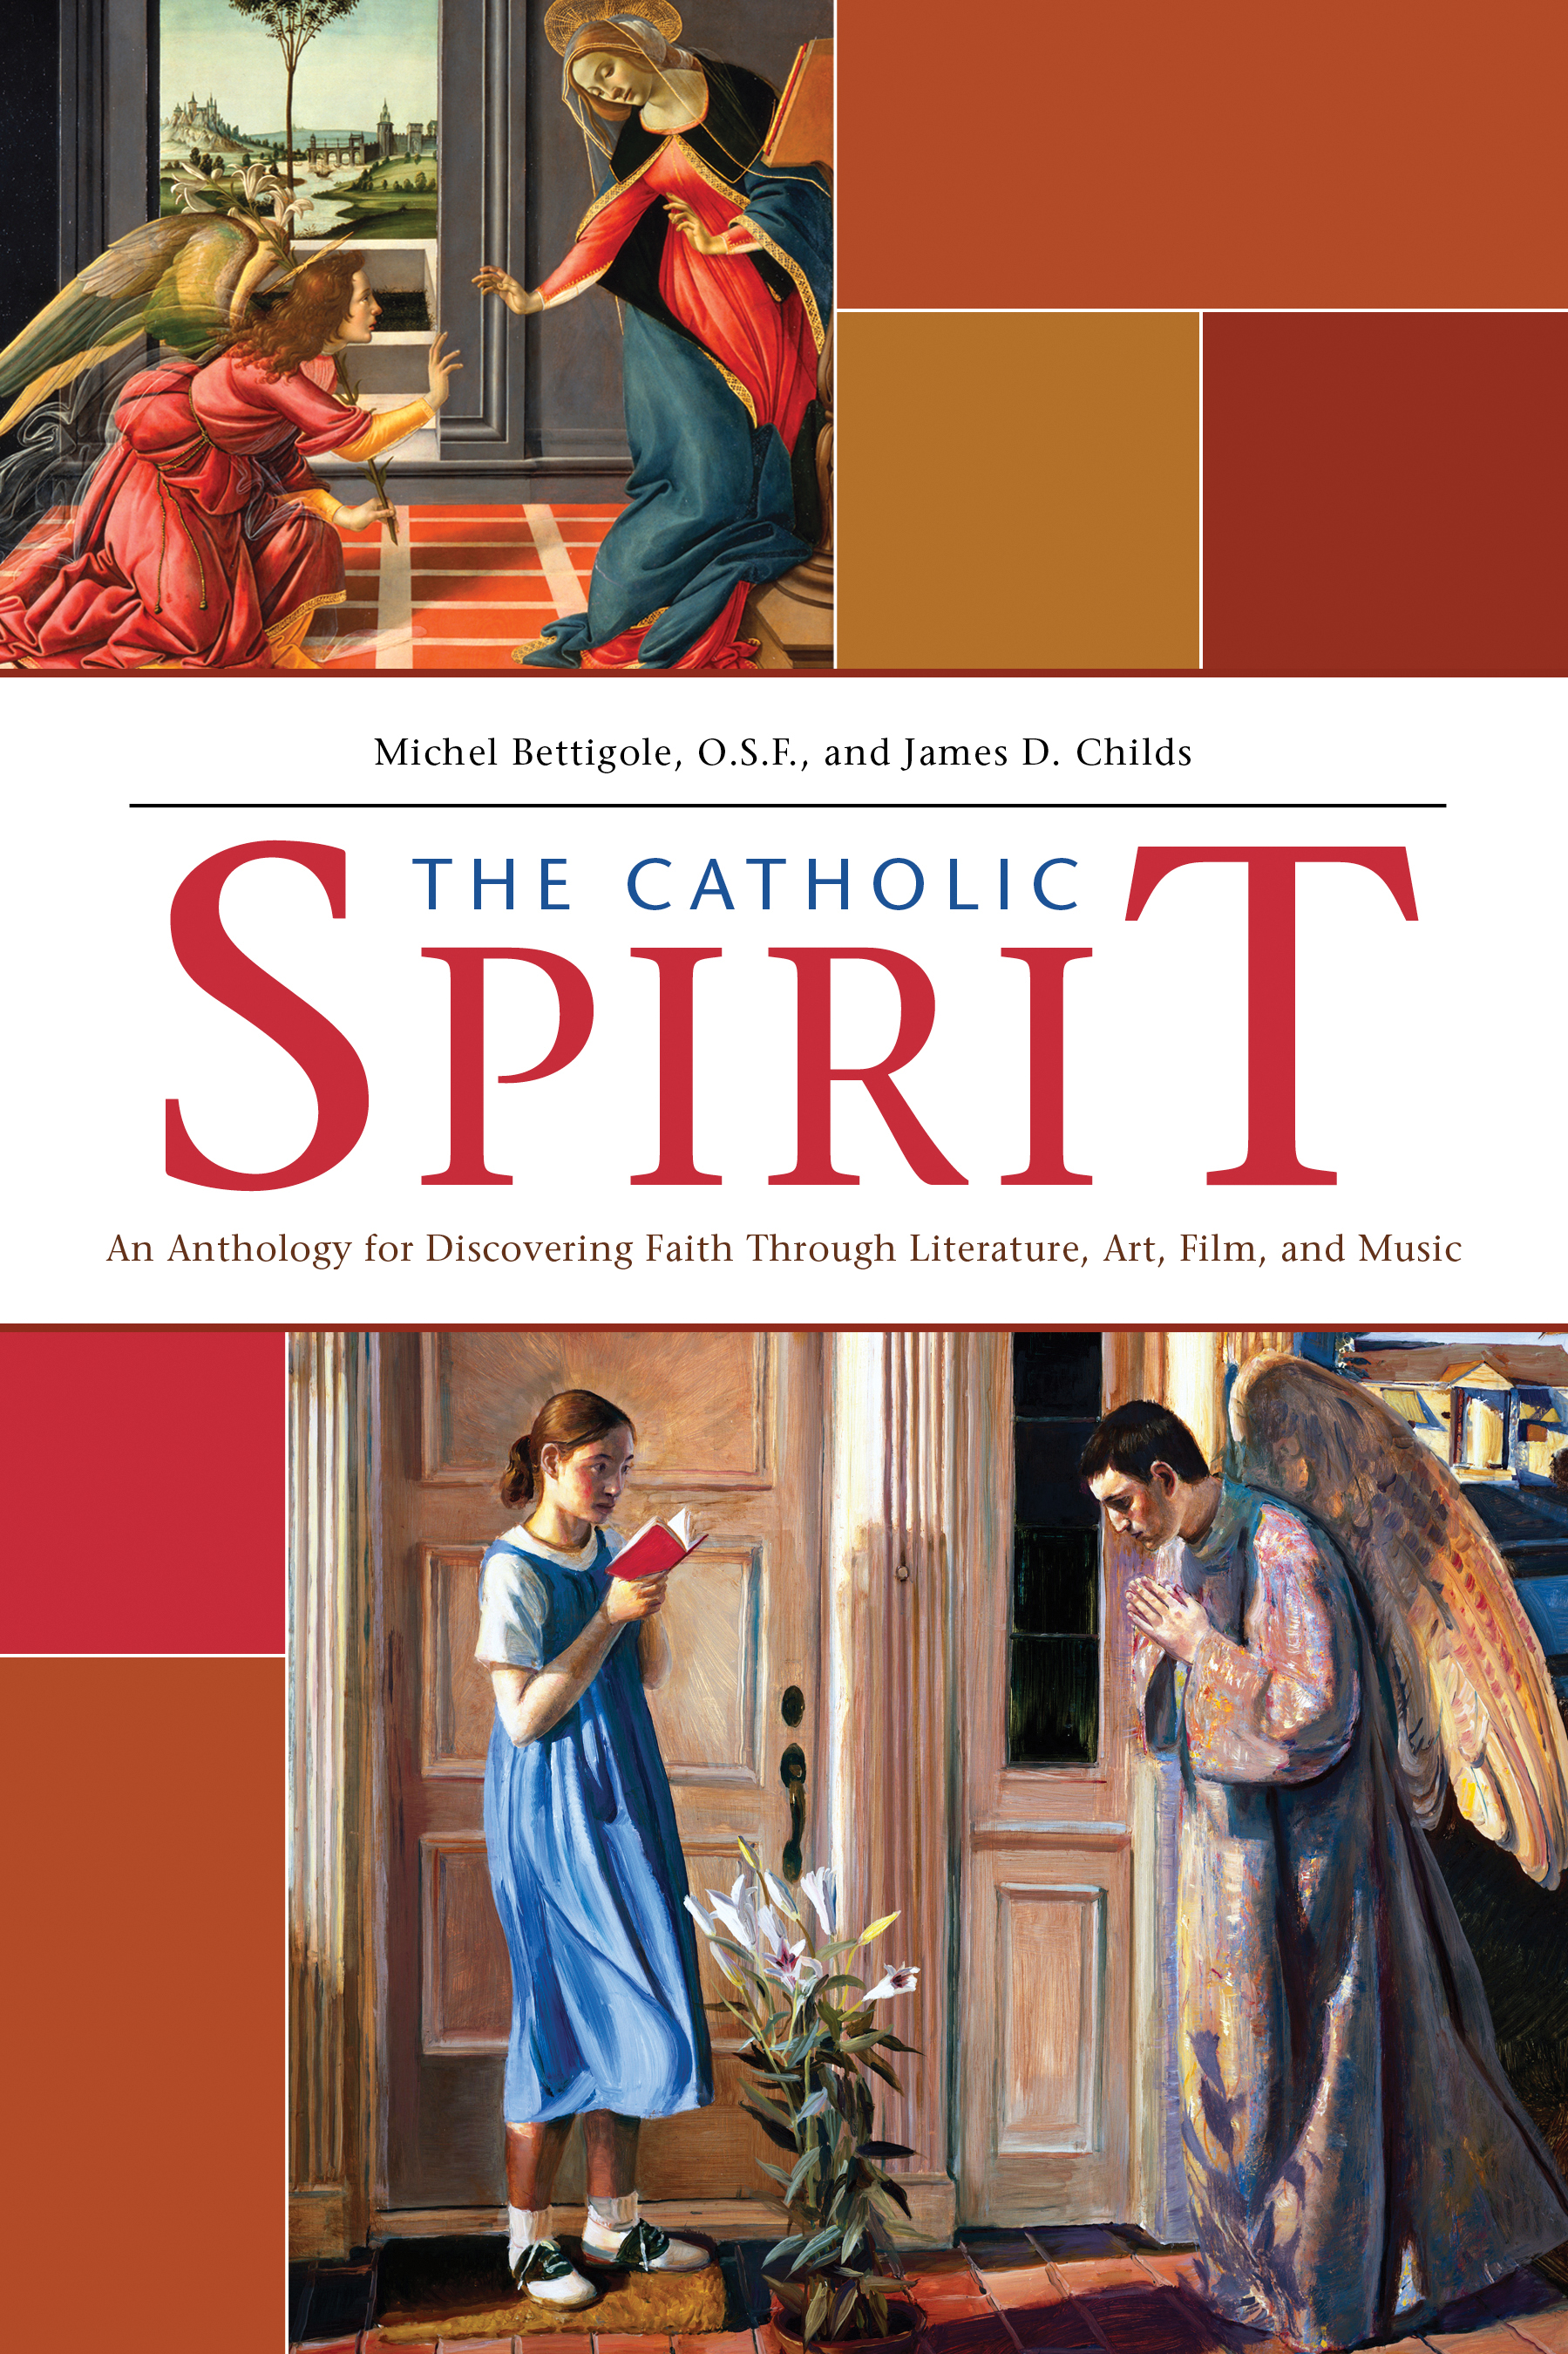 The Catholic Spirit